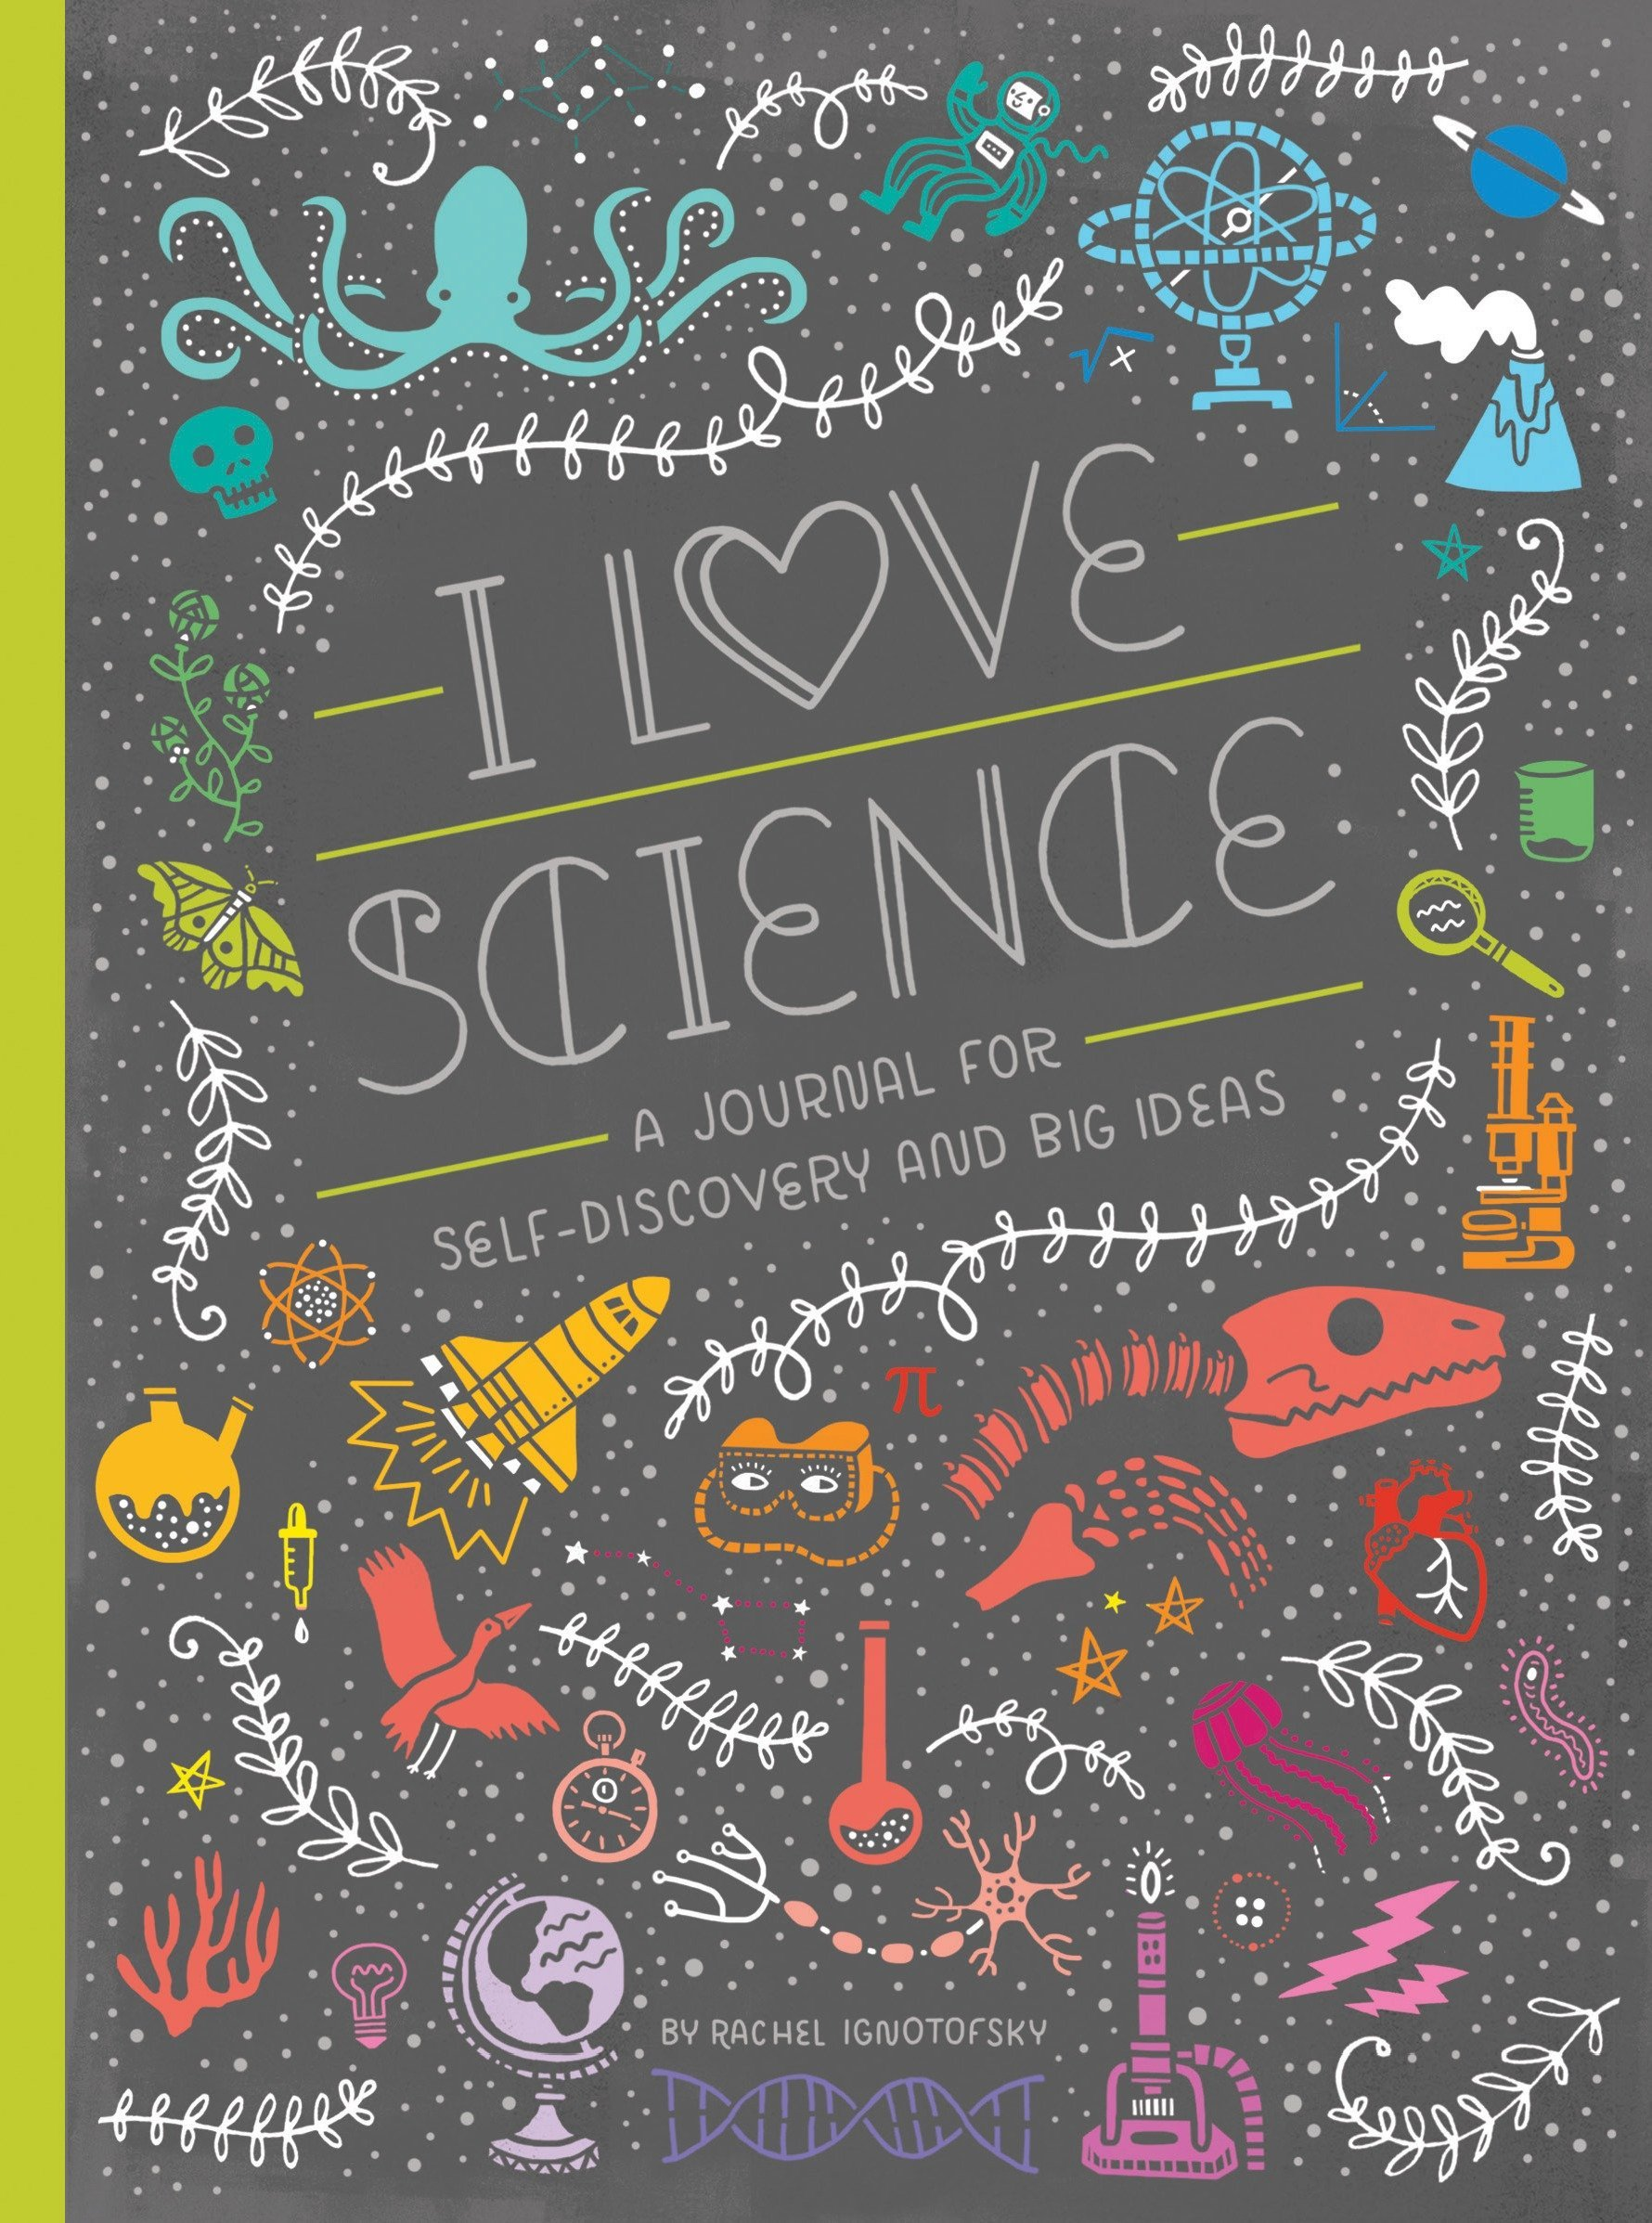 I love science a journal for self discovery and big ideas women in i love science a journal for self discovery and big ideas women in science rachel ignotofsky 9781607749806 amazon books fandeluxe Gallery